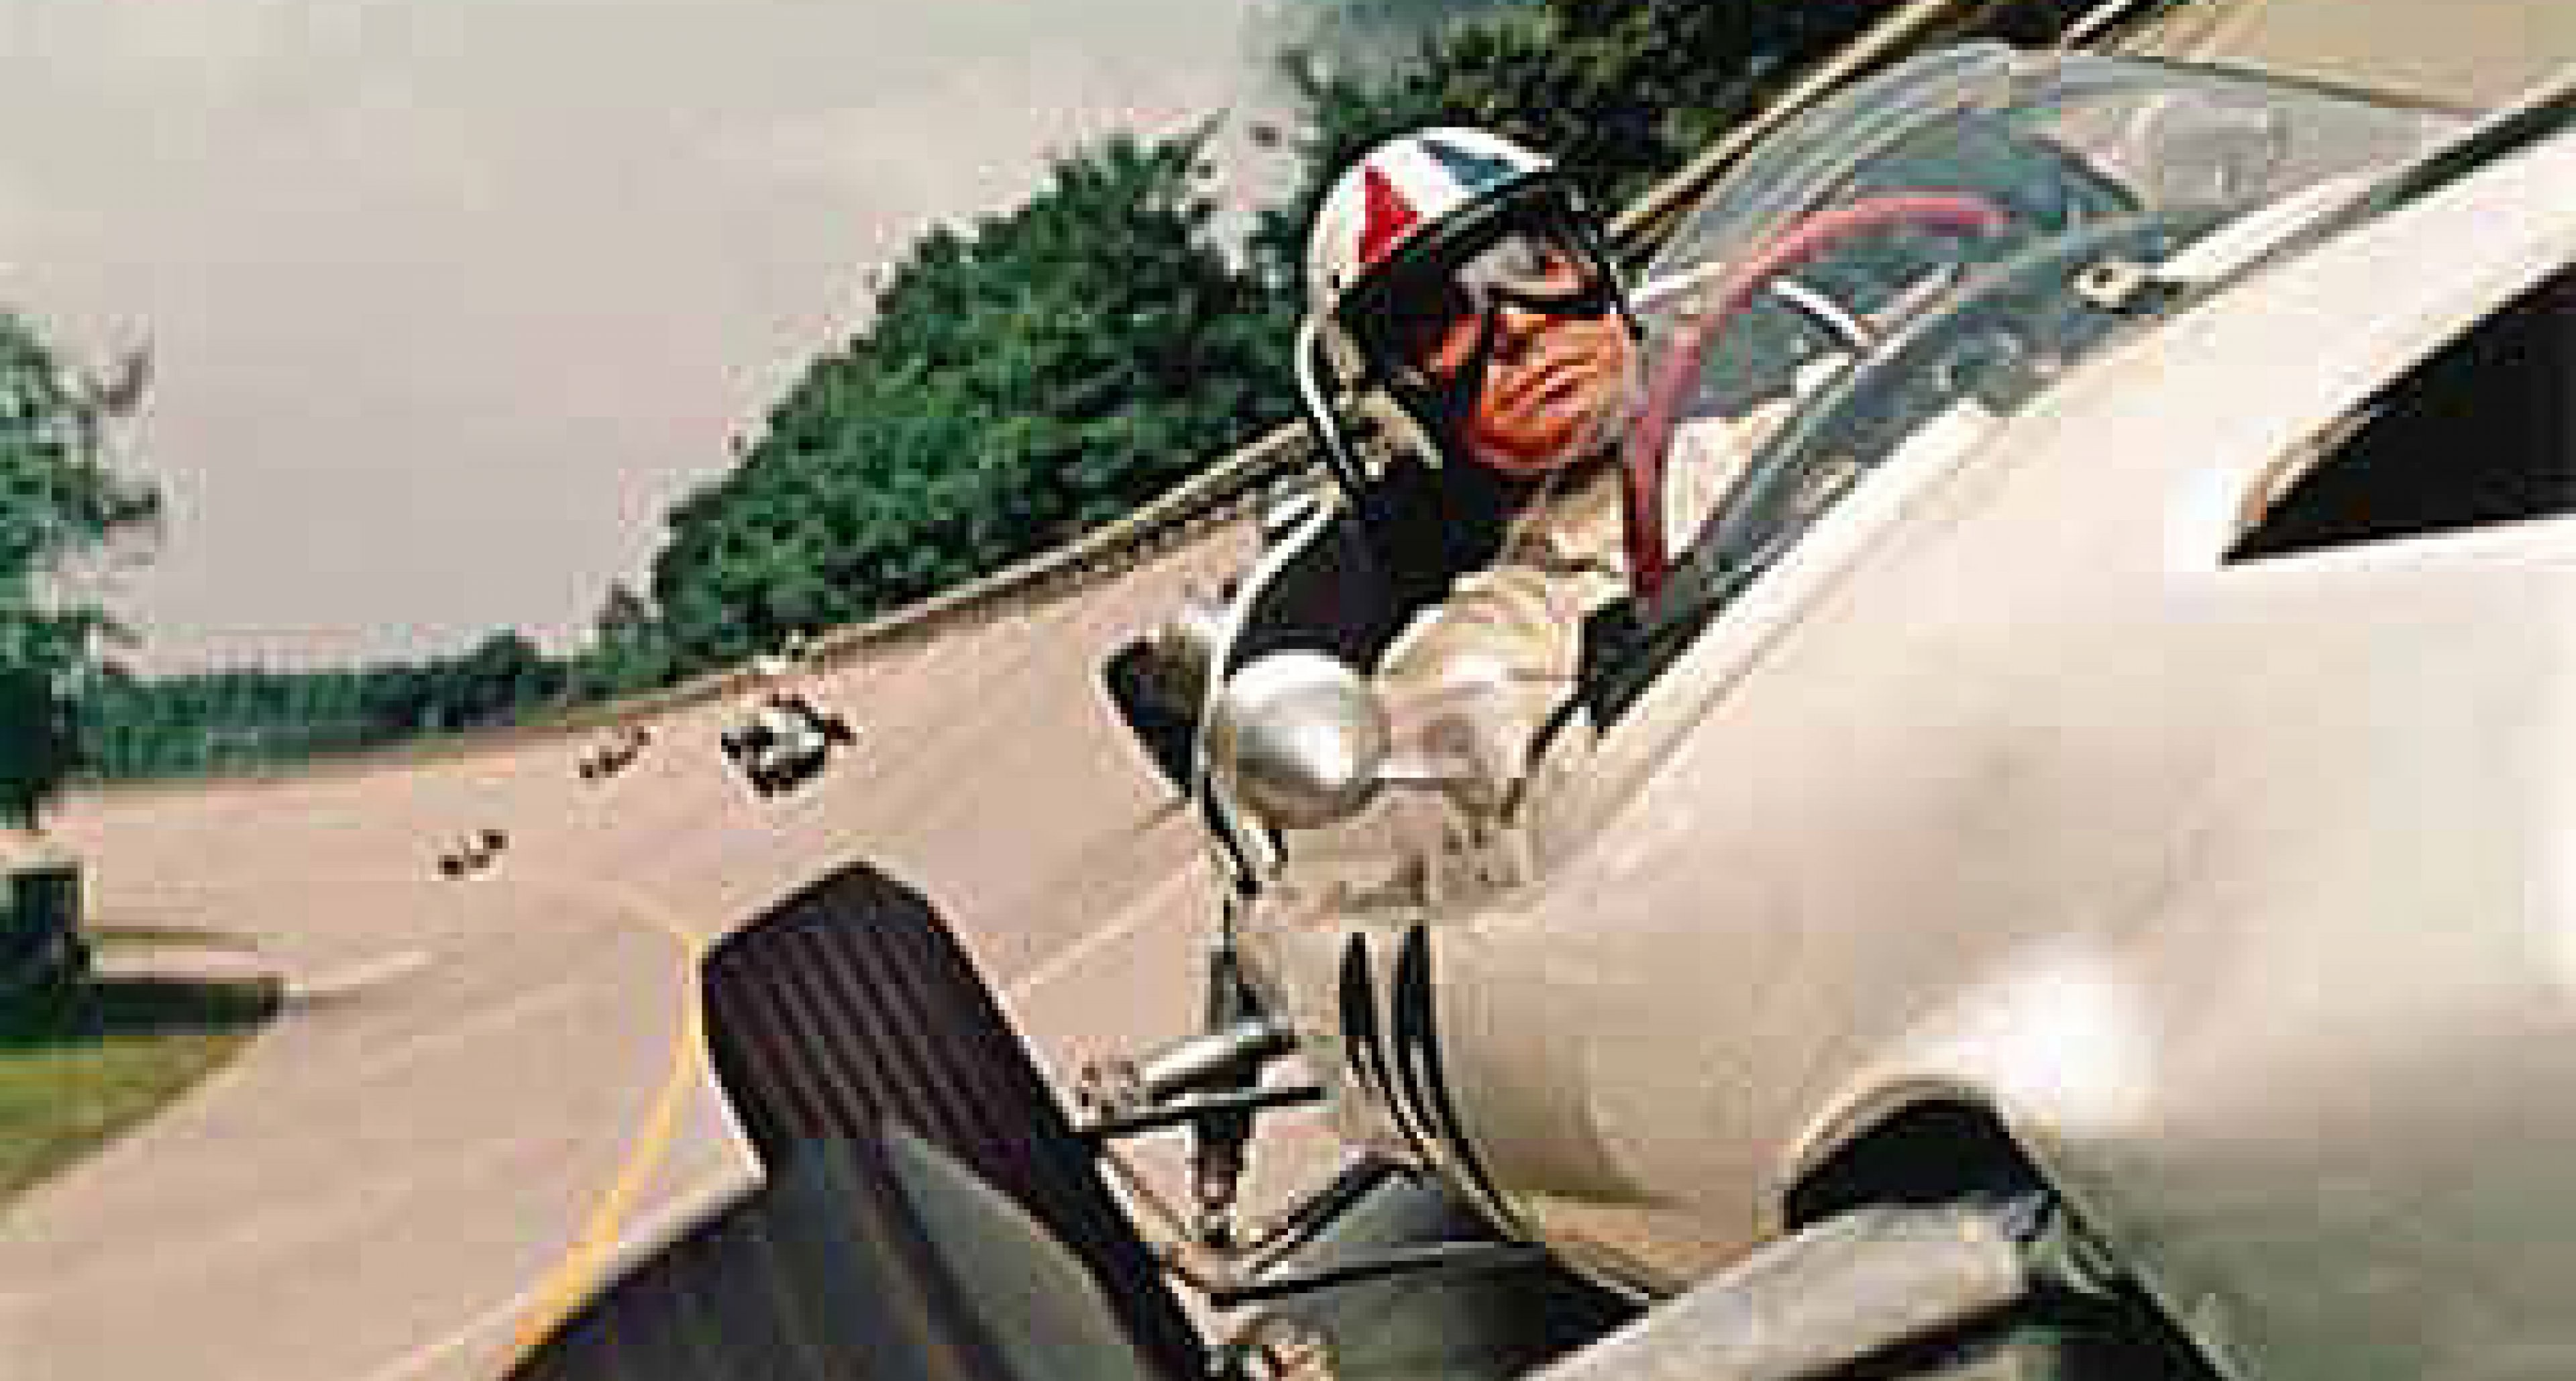 Special Edition, Double DVDs of 'Grand Prix' and 'Bullitt' Offer